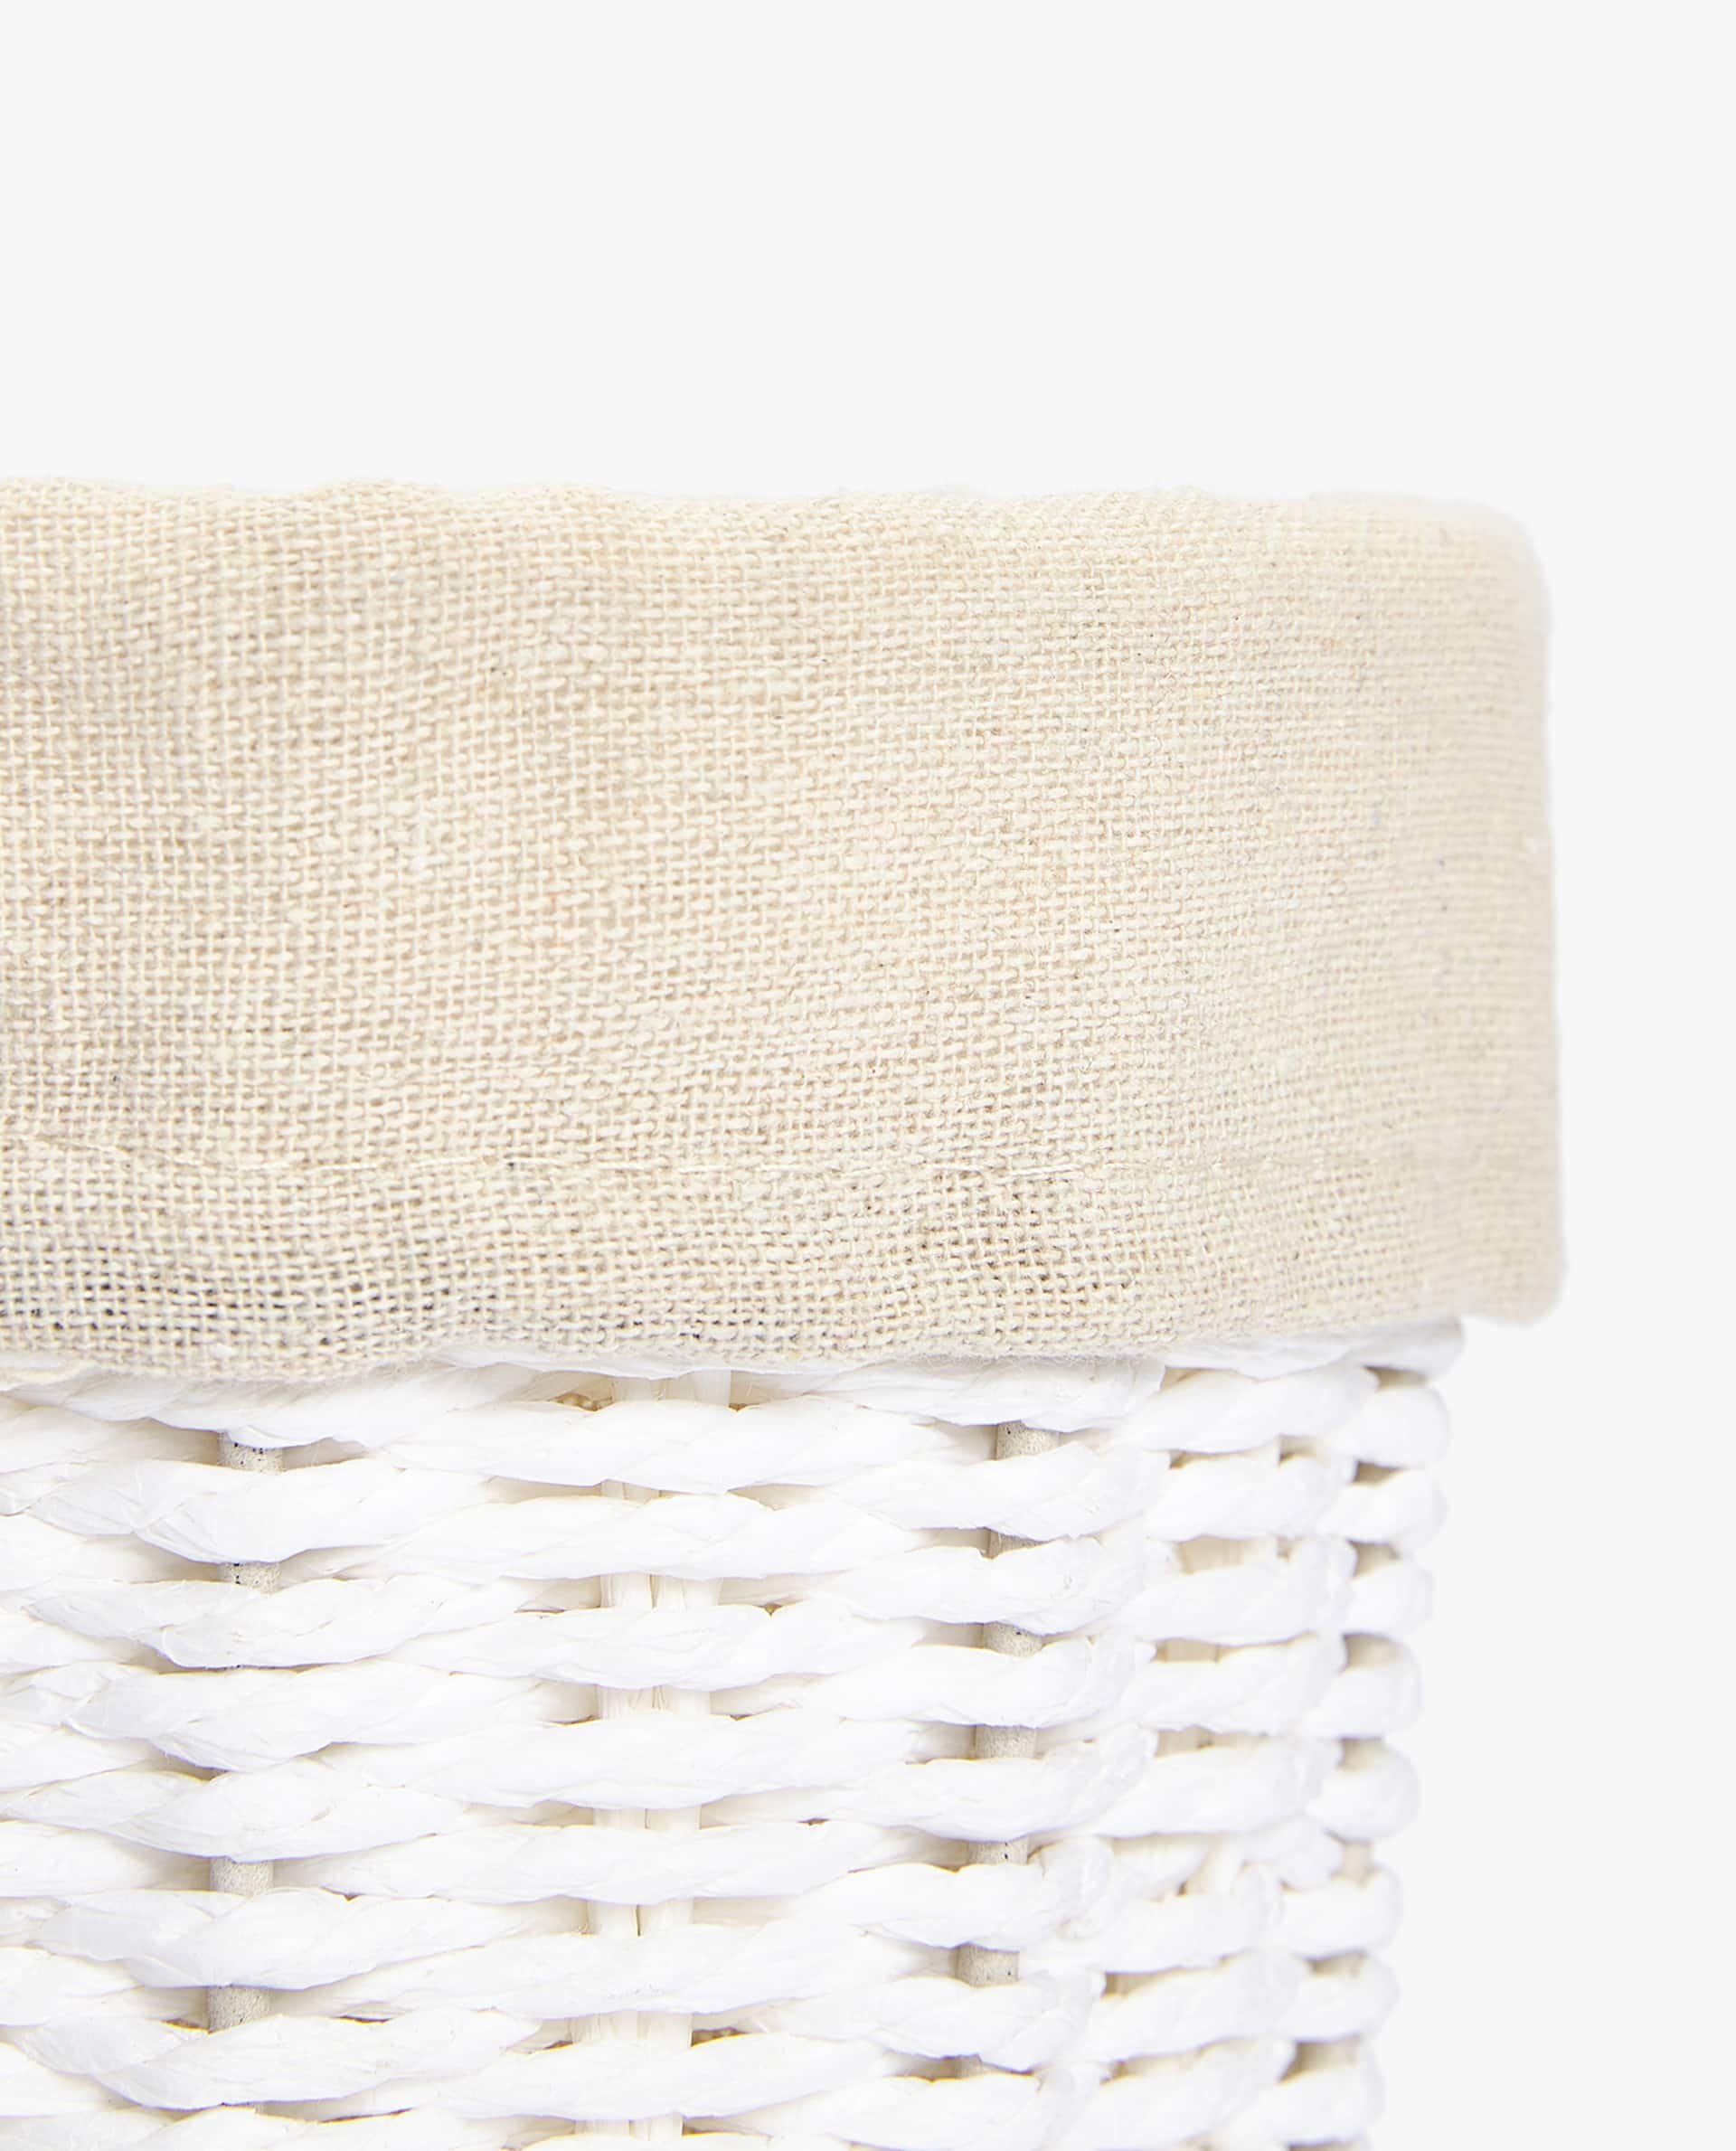 Round Fabric Lined Basket Linen Selection Bedroom Zara Home Image 2 Of The Product